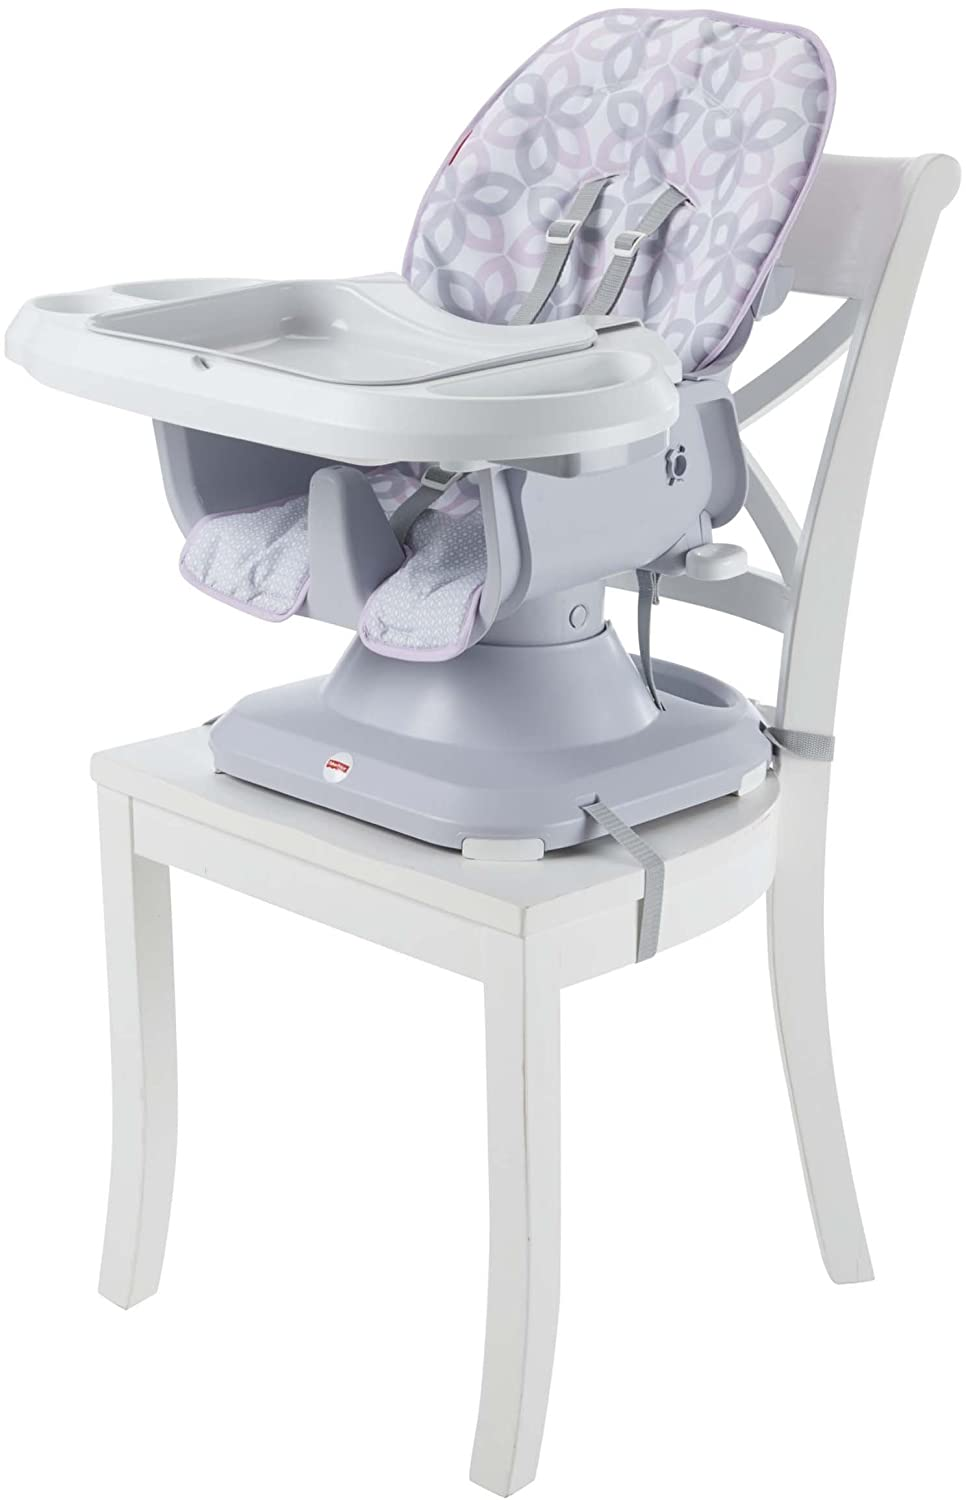 Fisher-Price Space Saver High Chair, Grey Floral FTM04